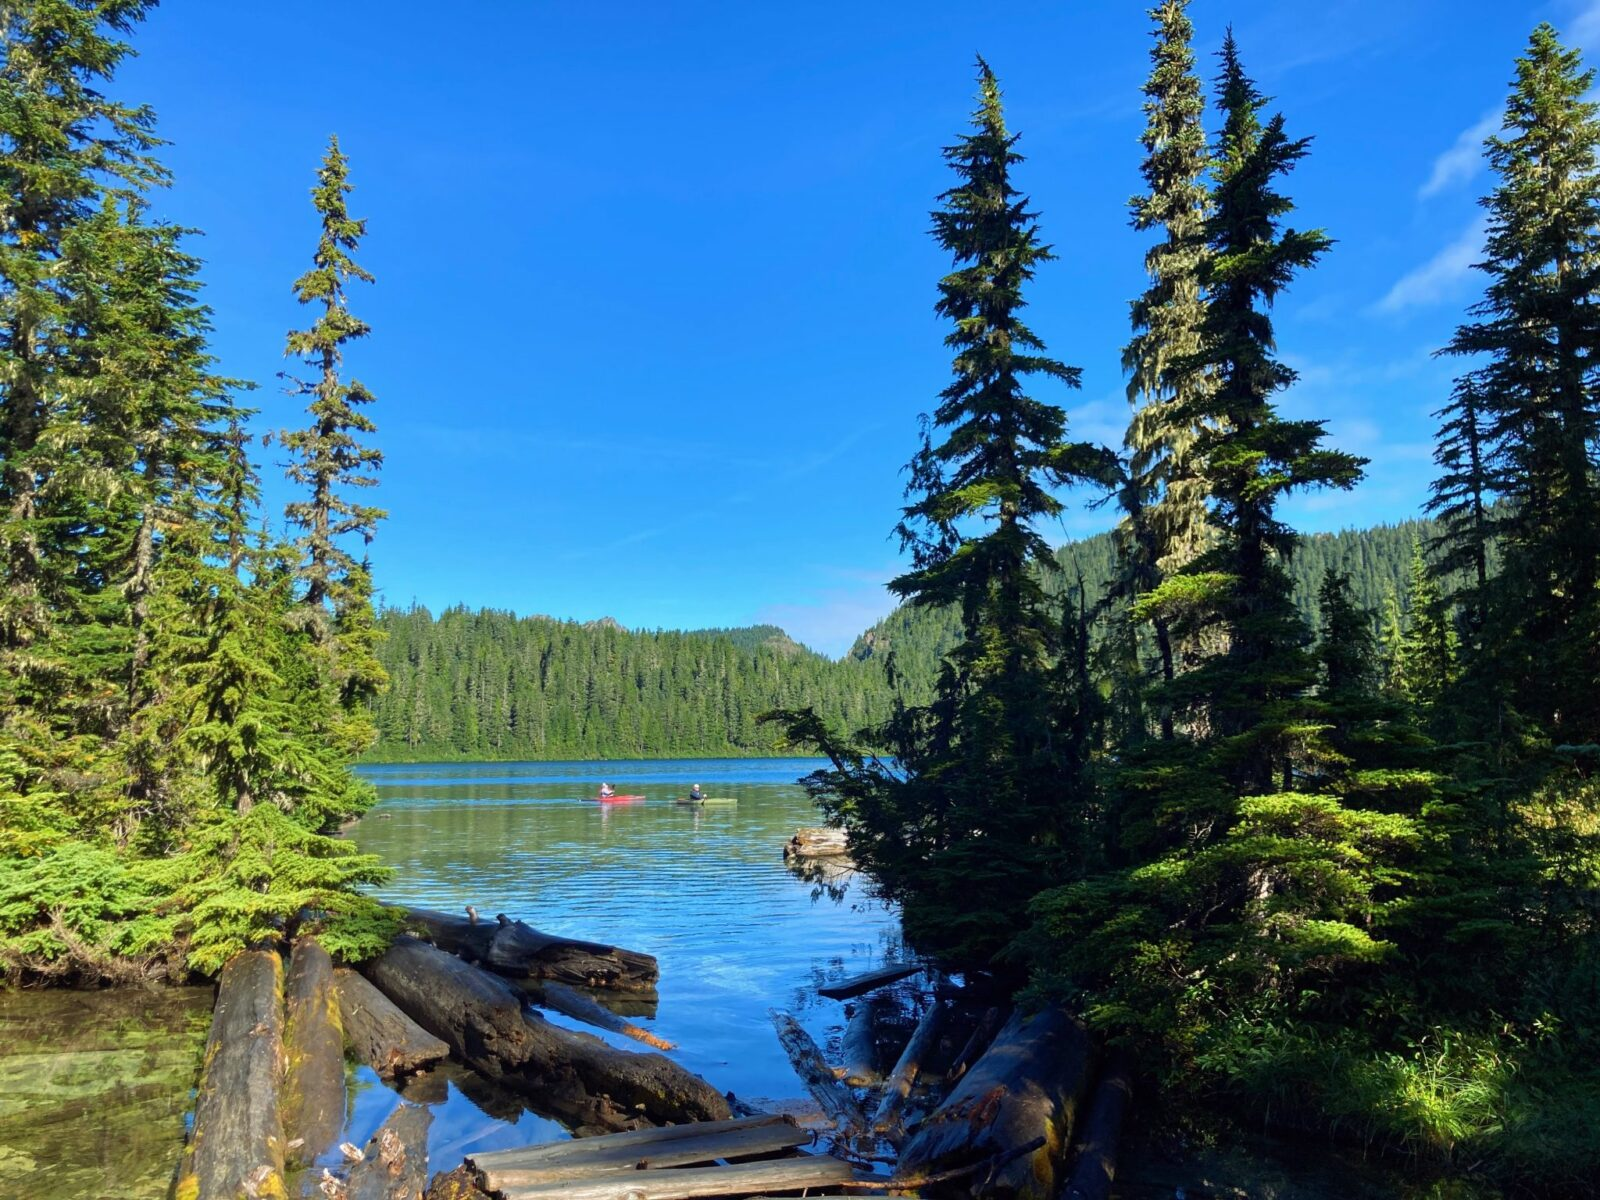 Two kayakers in the distance on Mowich Lake, a remote lake in Mt Rainier National Park. In the distance are forested hillsides and in the foreground are a few logs and some sub alpine firs.